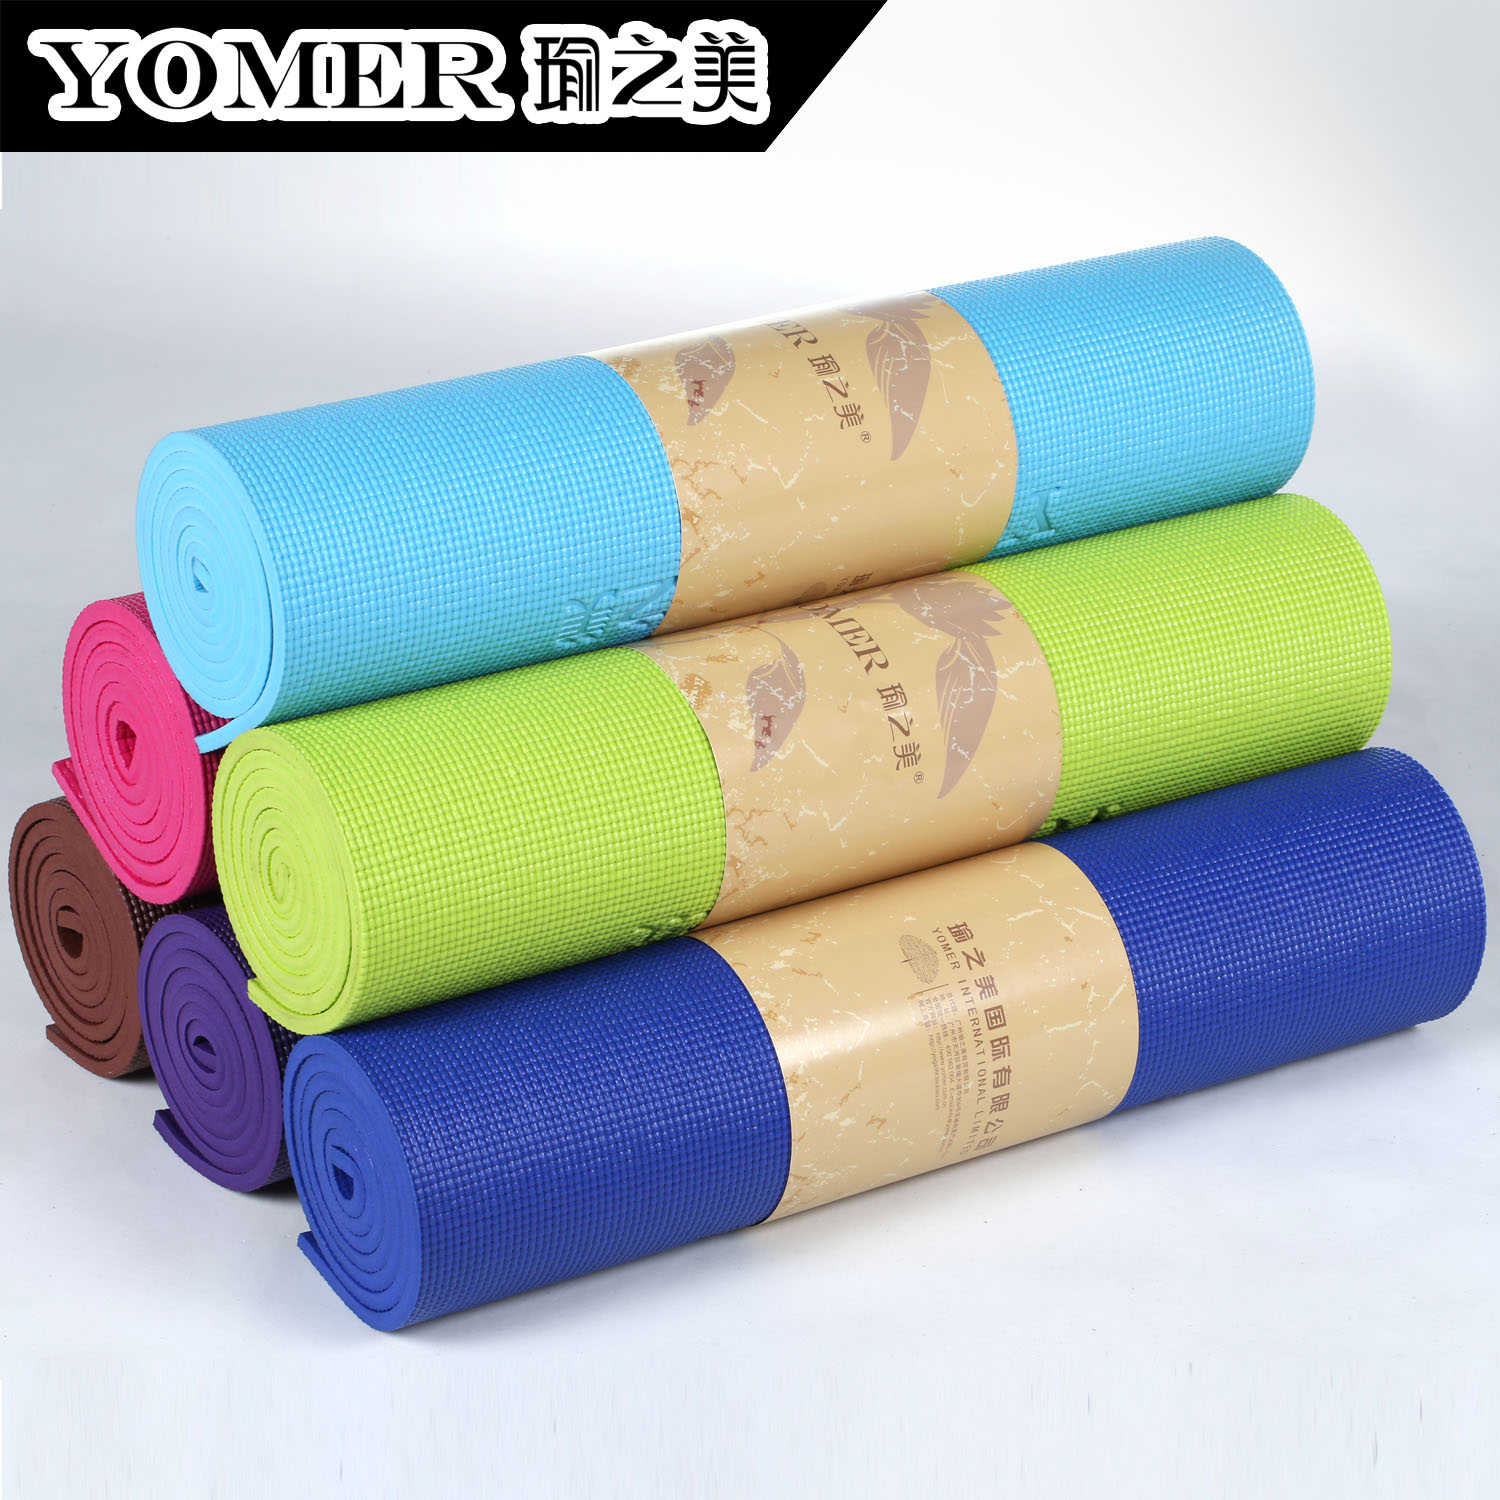 Yoga mat slip-resistant 10mm thickening yoga mat yoga carpet fitness mat m0210(China (Mainland))